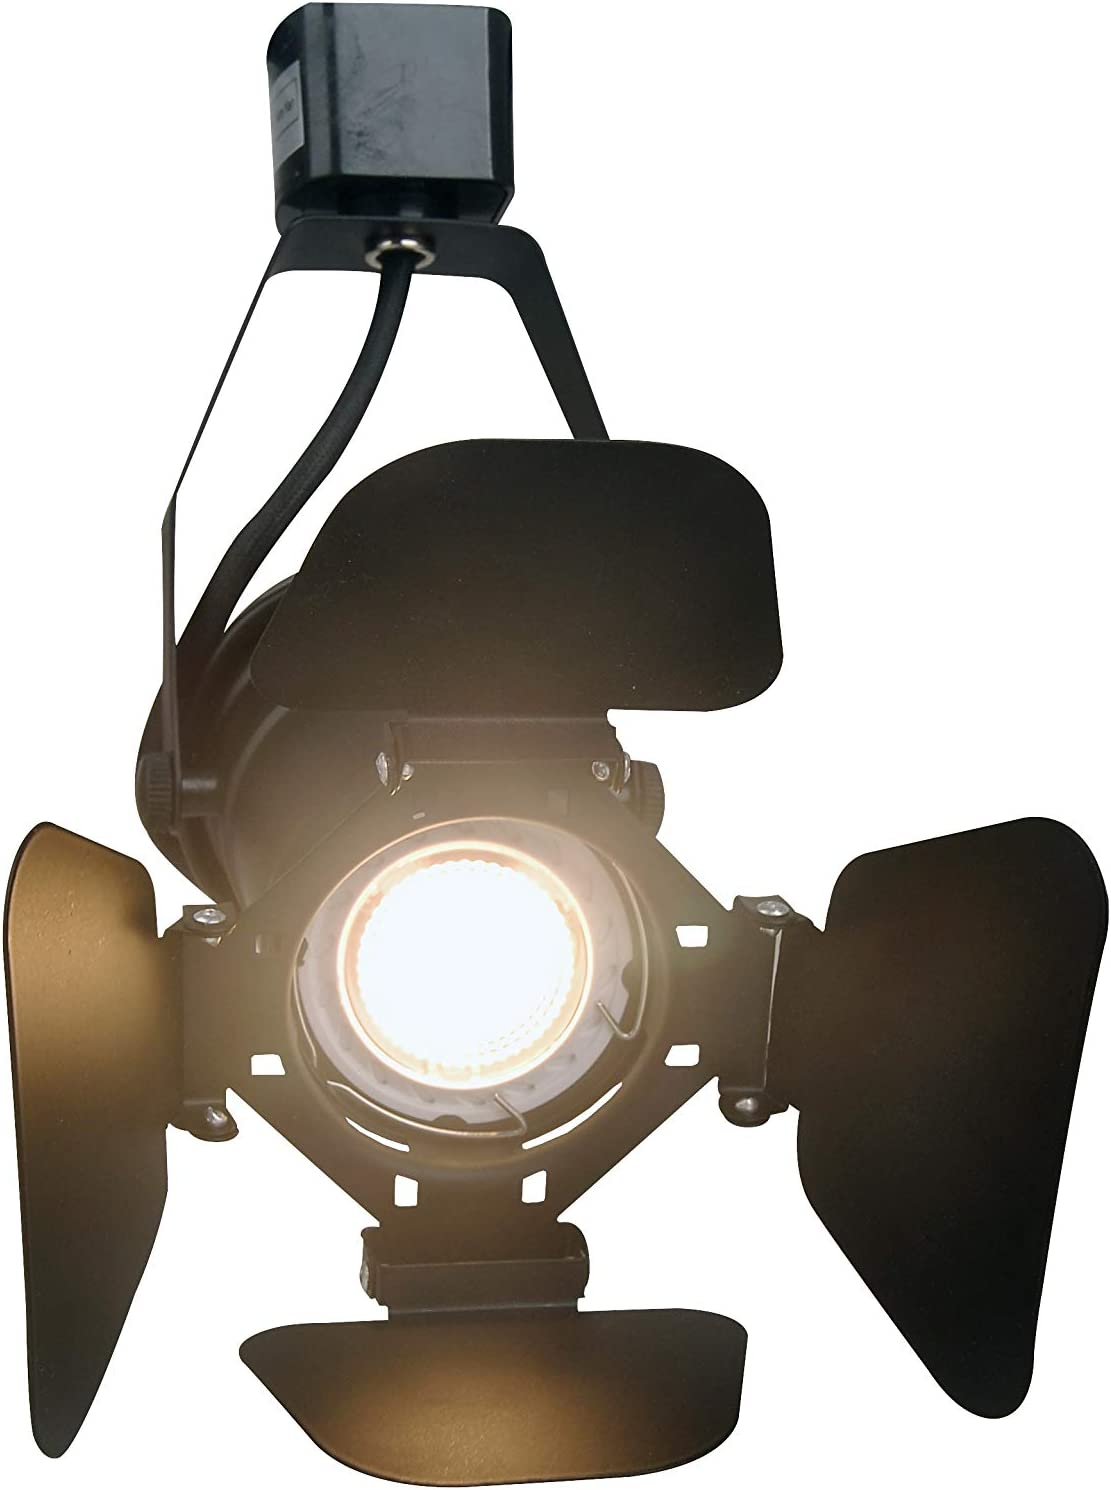 KimYan LED Track Lighting Heads for Home Theater or Industrial Decor Compatible H Type System 2Pack